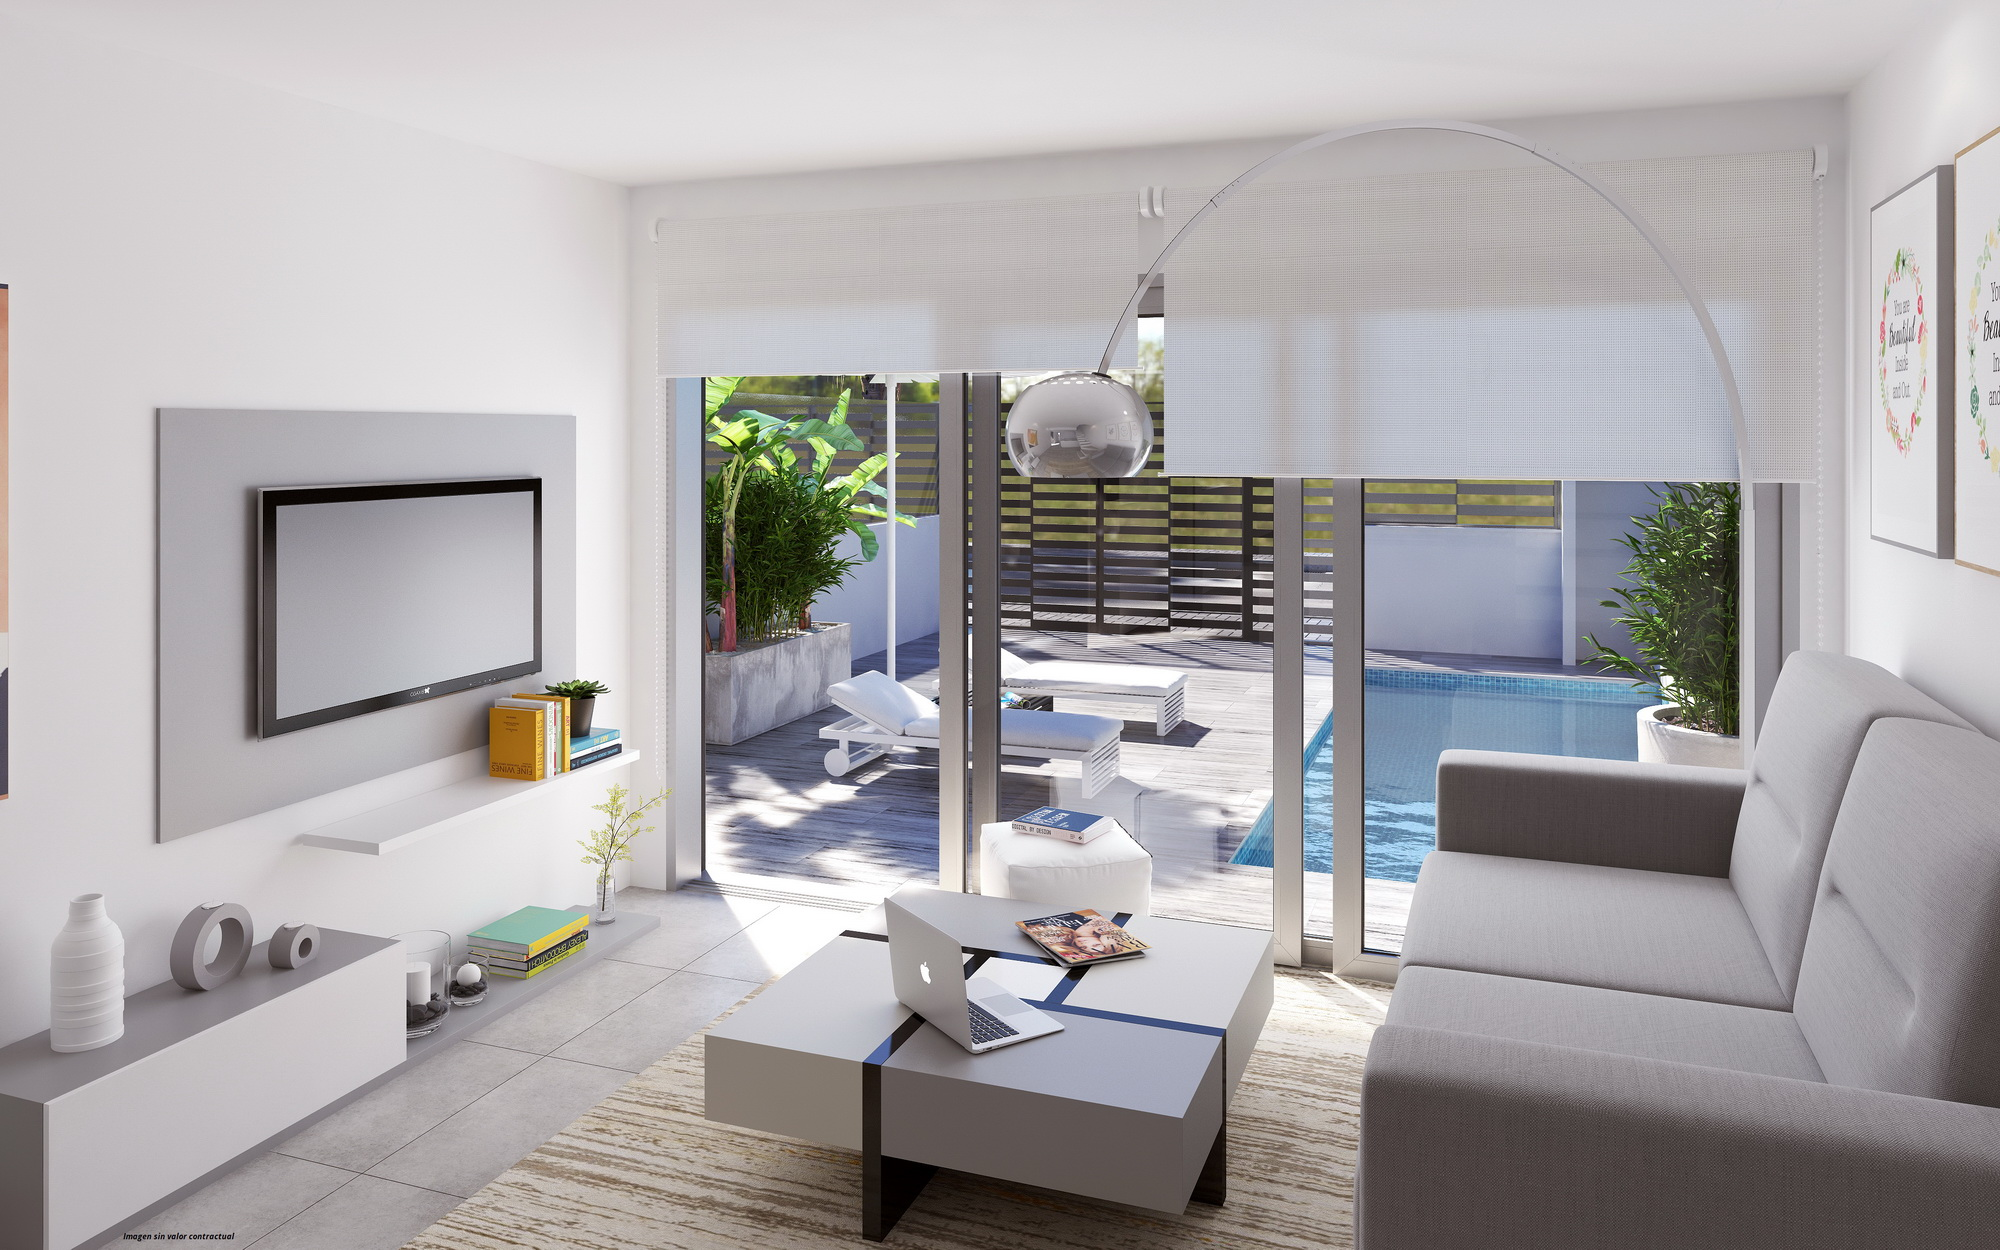 Let's develop and decorate your property in Spain!